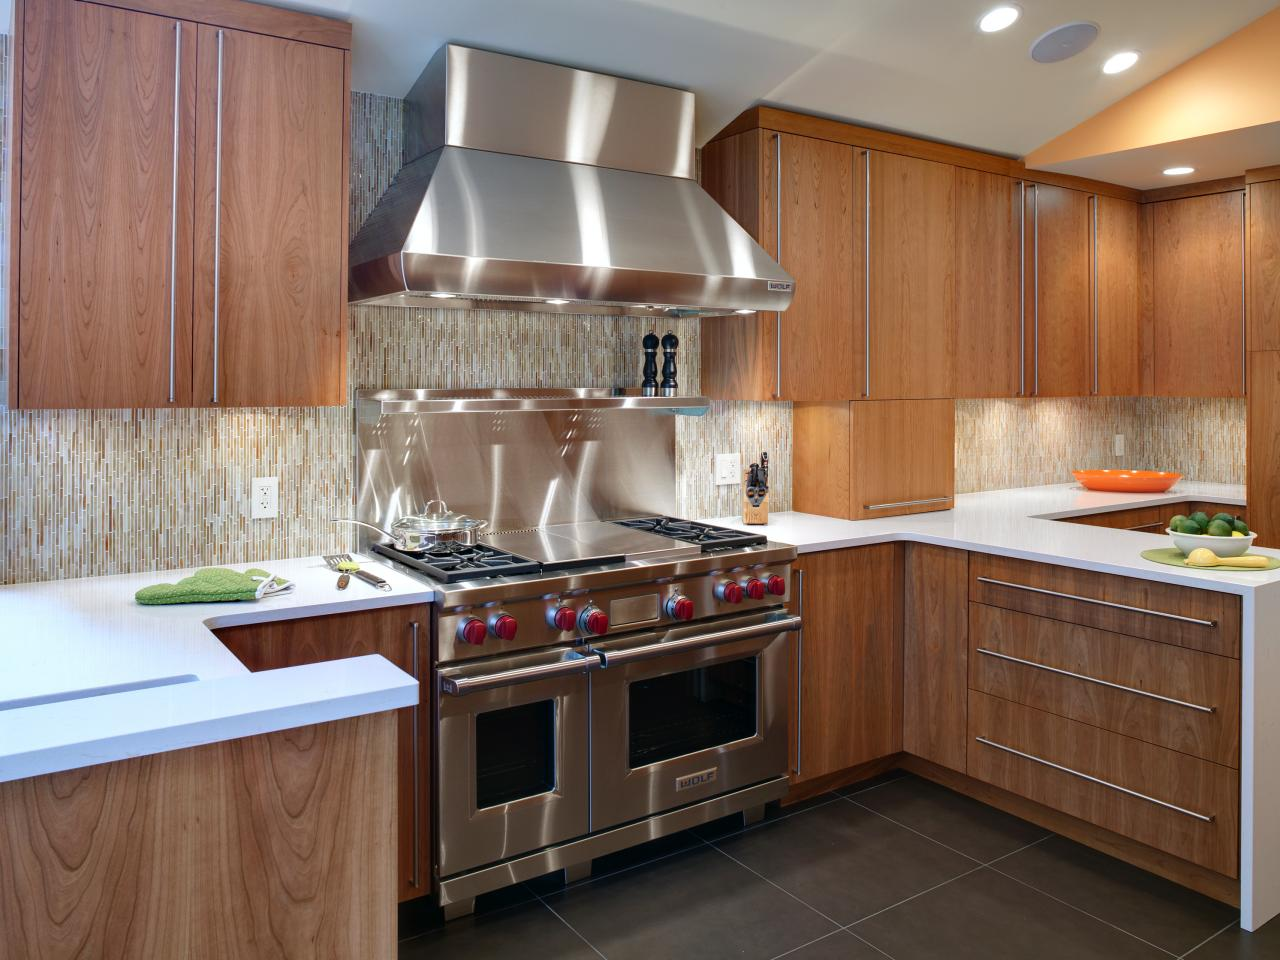 Kitchen Appliance Packages Canada Refinishing Kitchen Cabinet Ideas Pictures Tips From Hgtv Hgtv